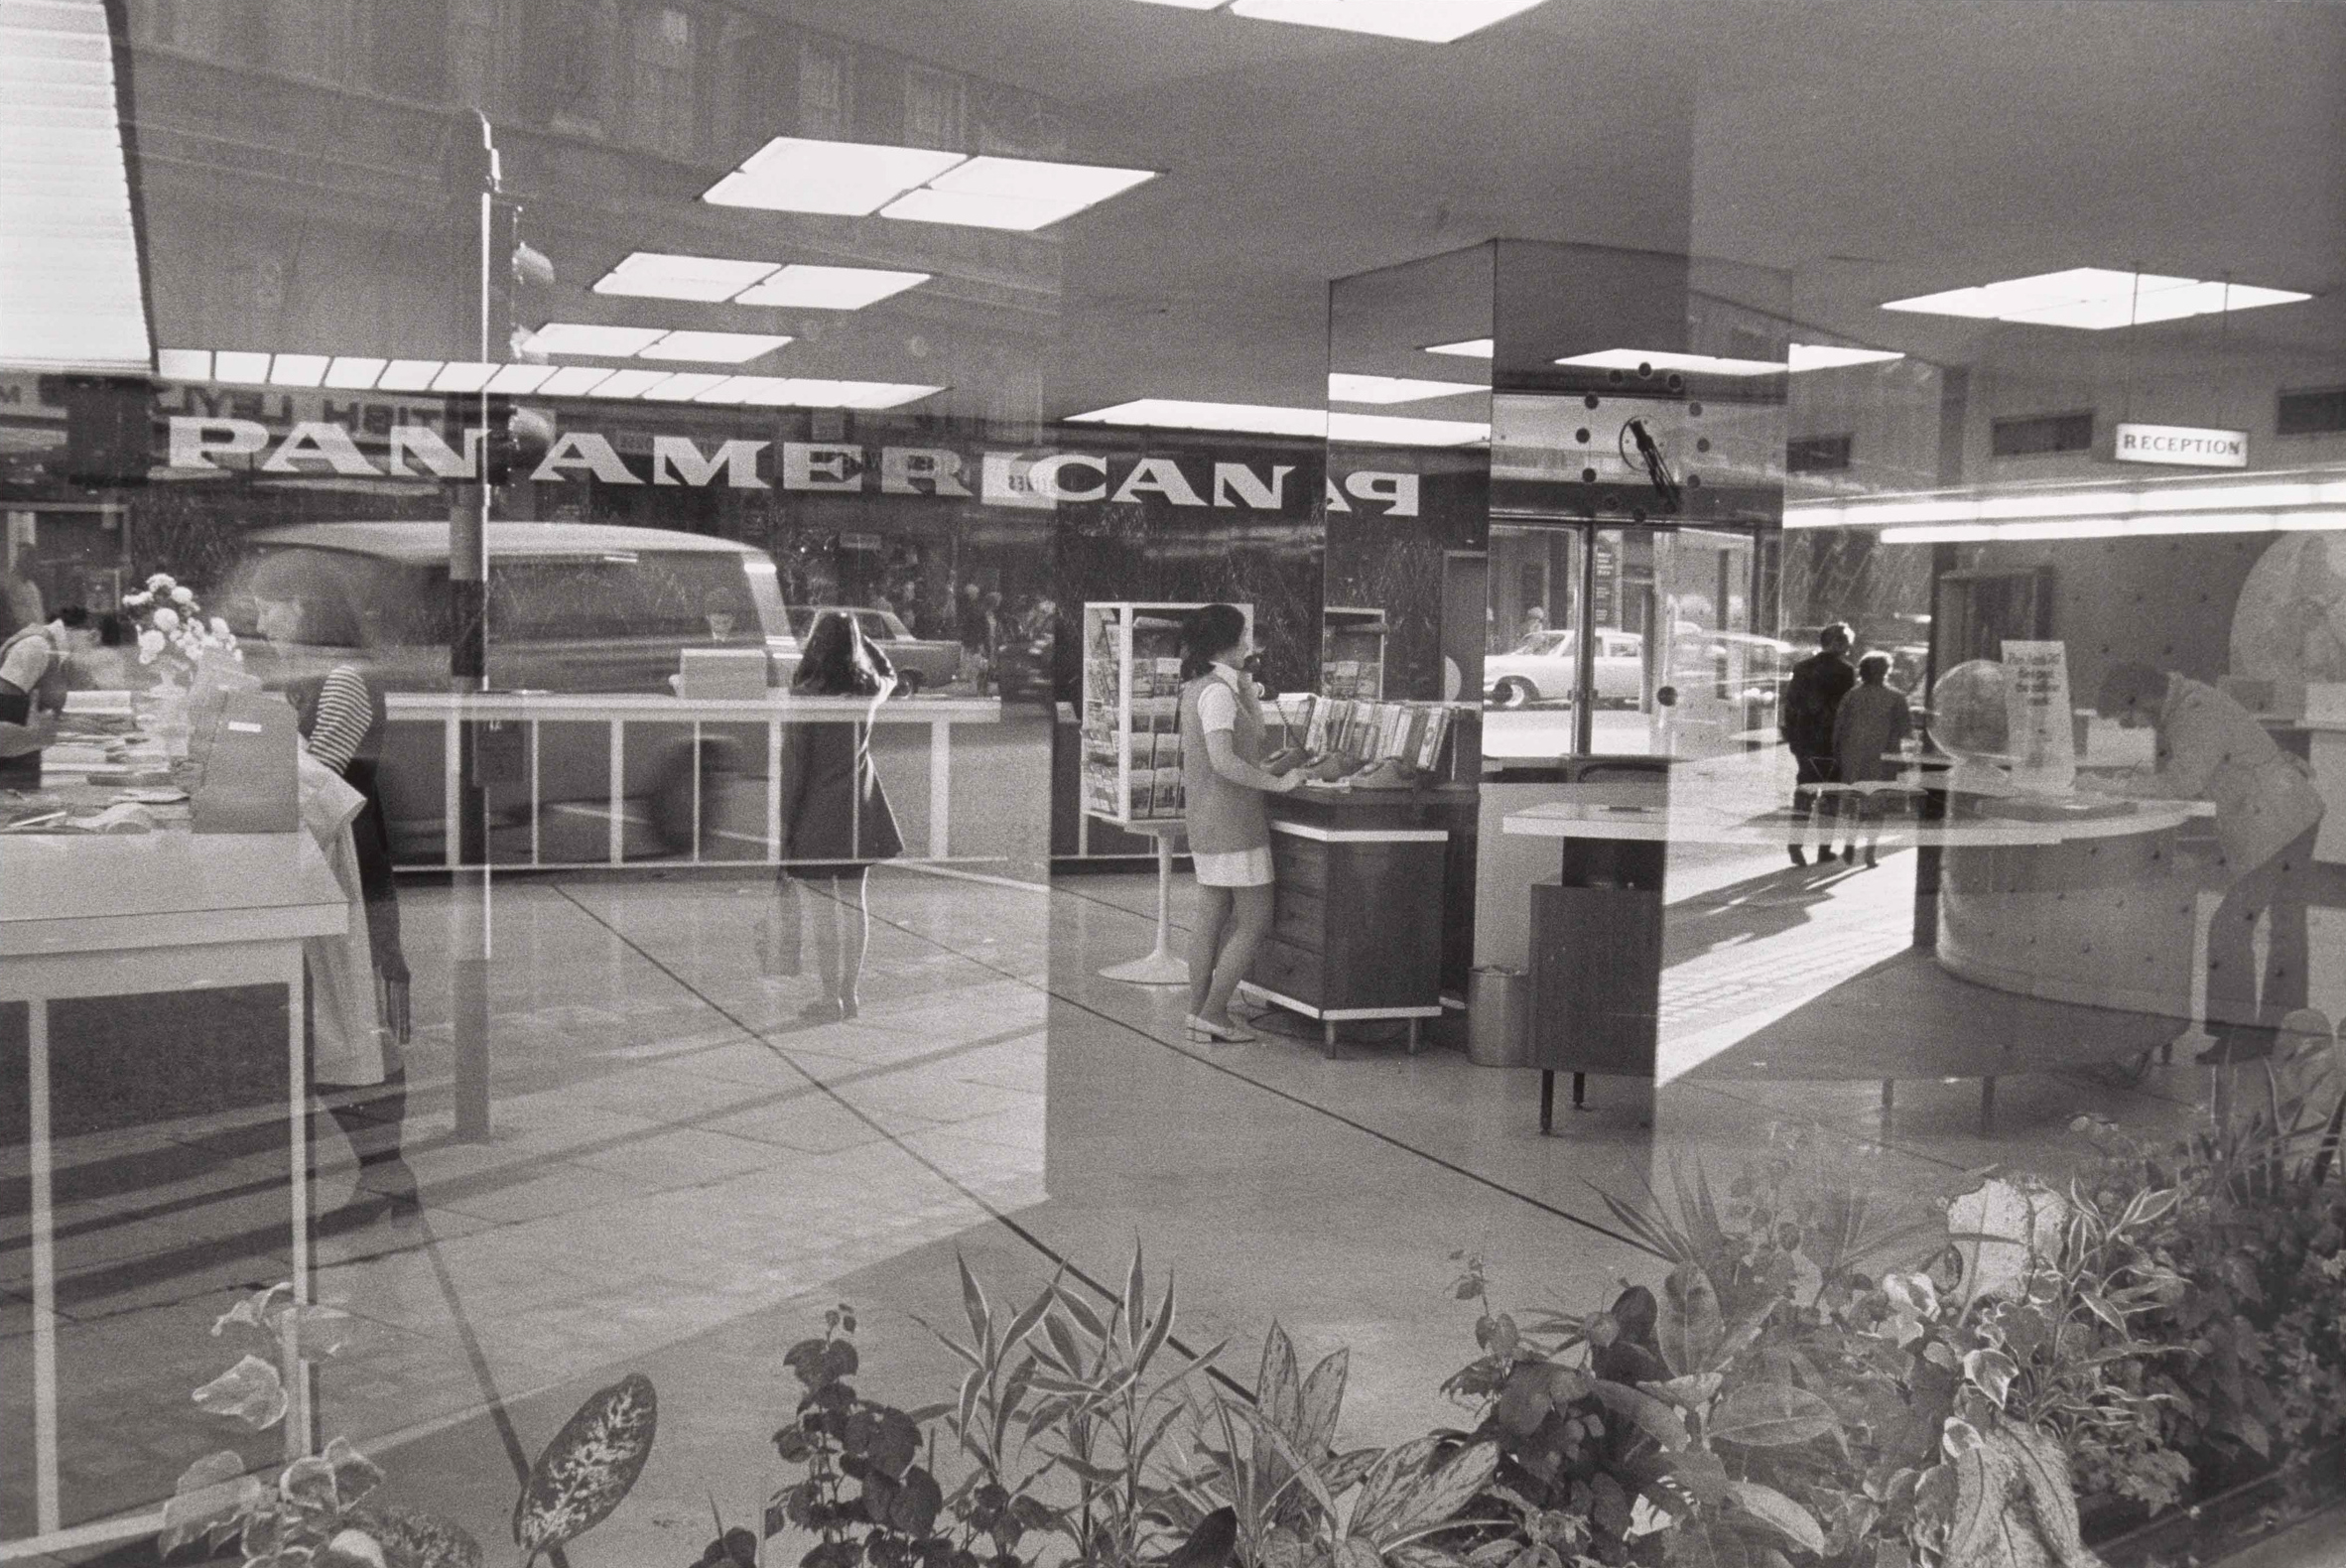 Ian Wallace, Pan Am Scan, (detail), 1970. Gelatin silver print, 40 x 60.1 cm. Art Gallery of Ontario, Gift of Sandra Simpson, 2017. © Ian Wallace, courtesy Catriona Jeffries 2017/236.1–.5.